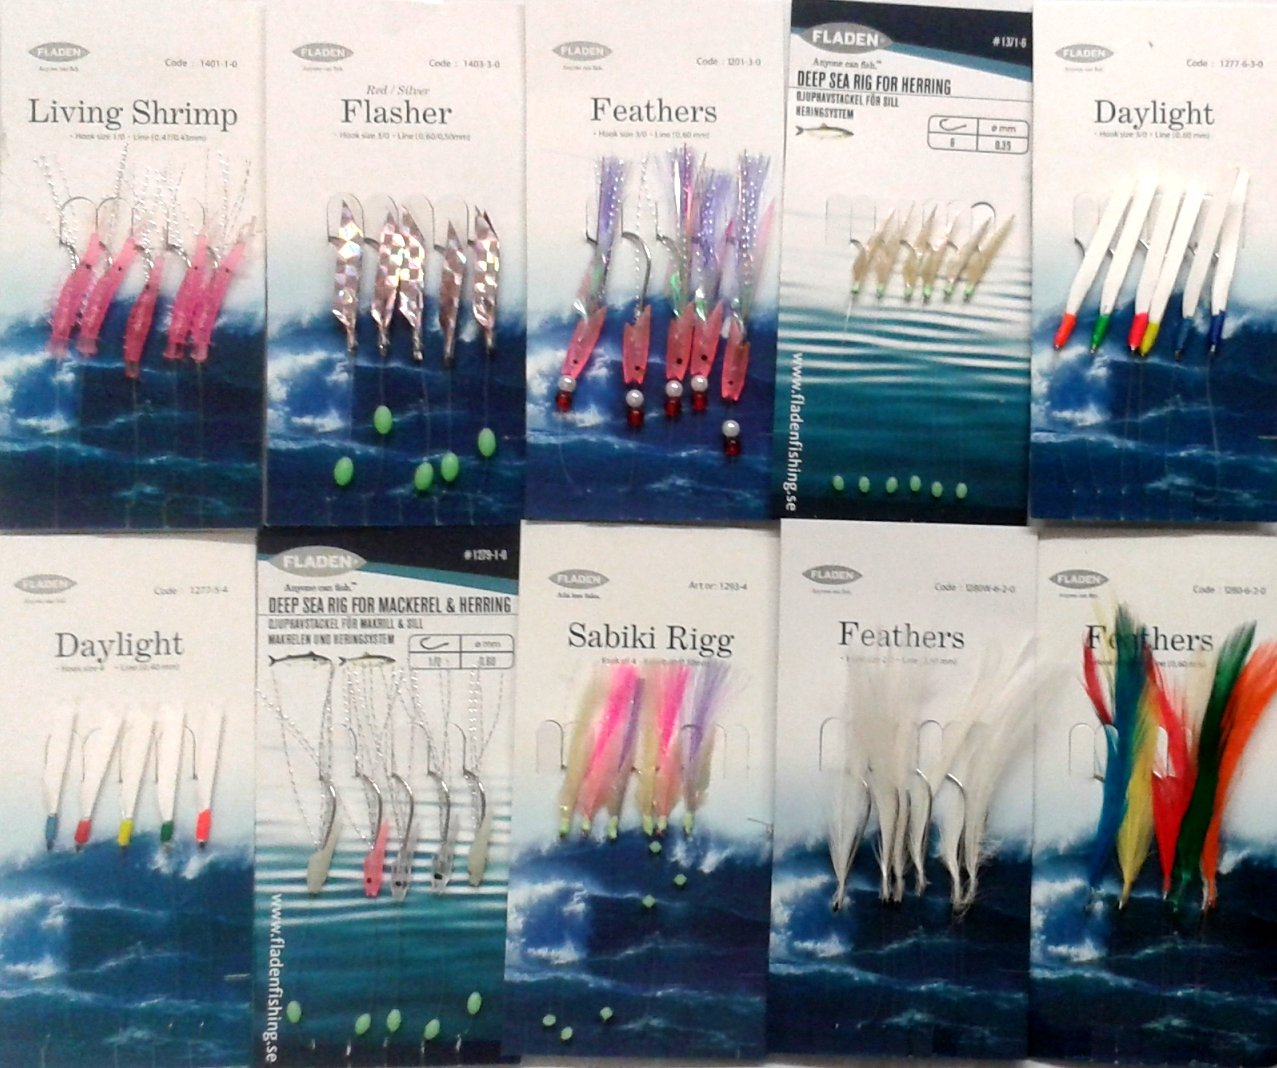 10 Assorted Bait & Mackerel Rigs Inc. Feathers Daylight and Sabiki (with 2 Marauder Snap Swivwls) Fladen